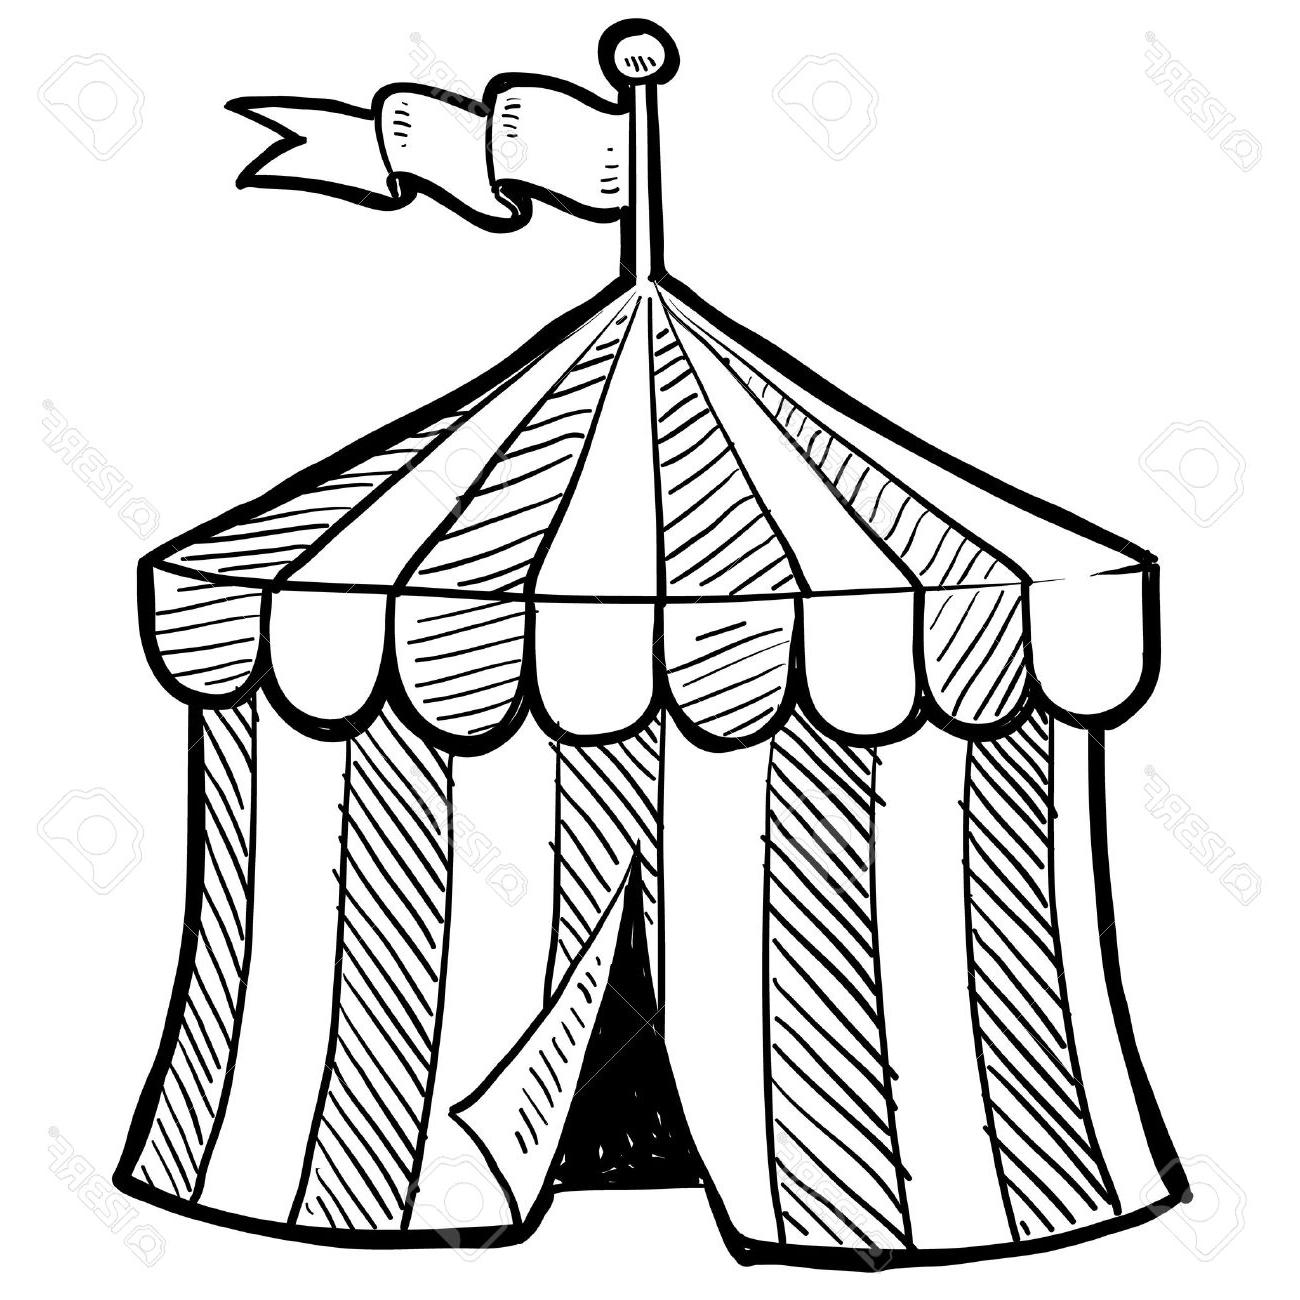 1300x1300 Top Doodle Style Circus Tent In Vector Format Stock File Free